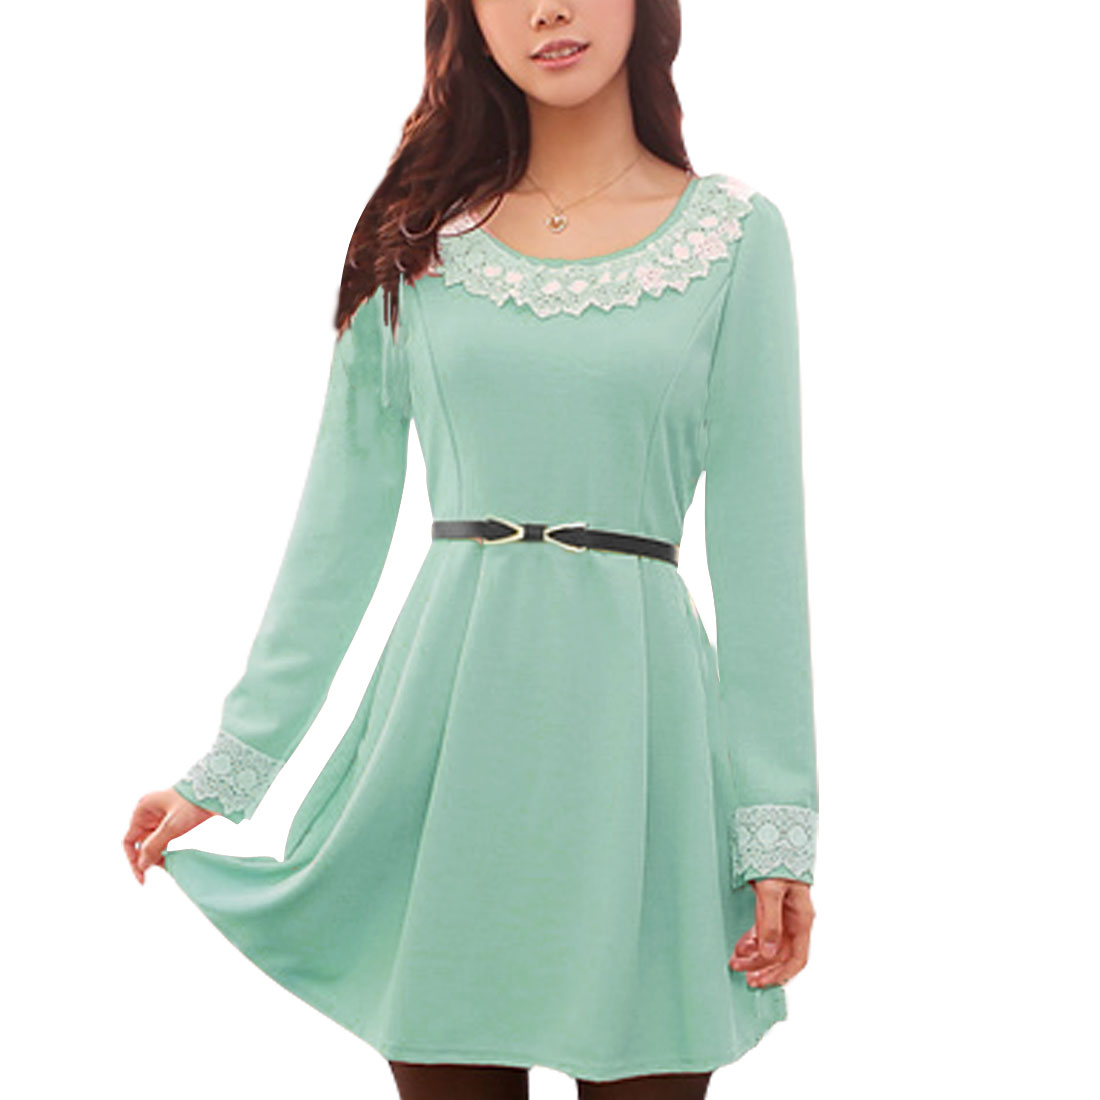 Ladies Light Green Peter Pan Collar Stretchy Pullover Mini Dress XS